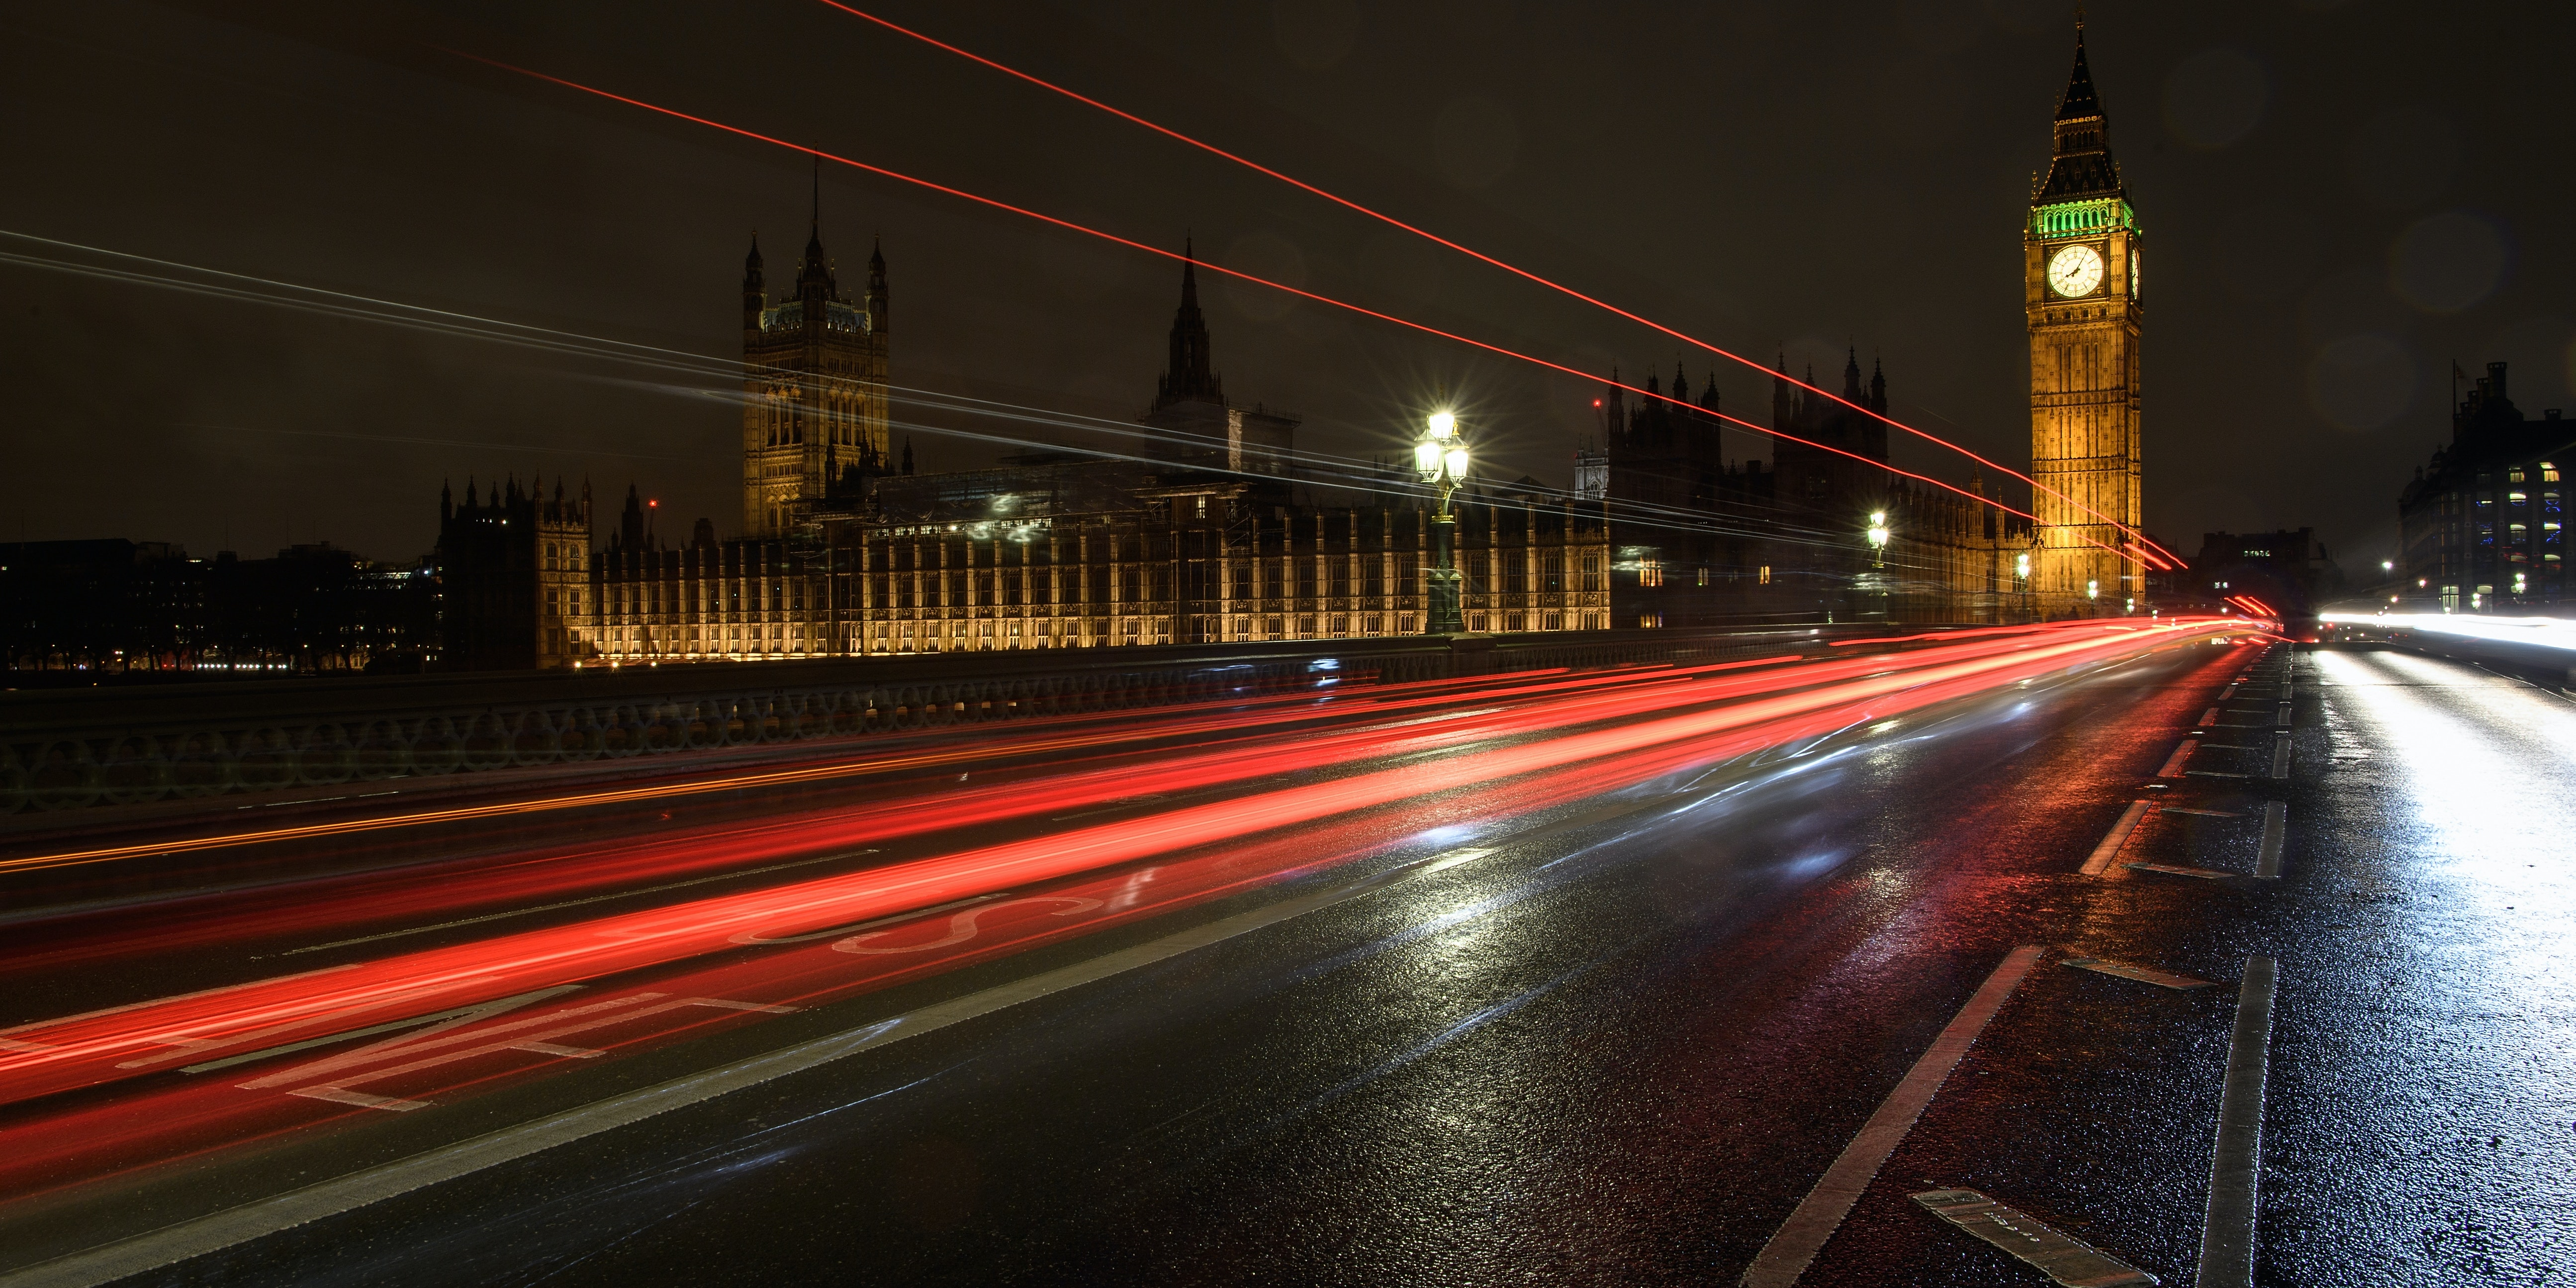 LONDON, ENGLAND - JANUARY 06:  Elizabeth Tower, commonly referred to as Big Ben, and the Houses of Parliament are seen on January 6, 2017 in London, England.  The iconic building is set to undergo six years of structural repair and renovation between 2022 and 2028,  due to crumbling stonework and inadequate fire safety systems.  (Photo by Leon Neal/Getty Images)